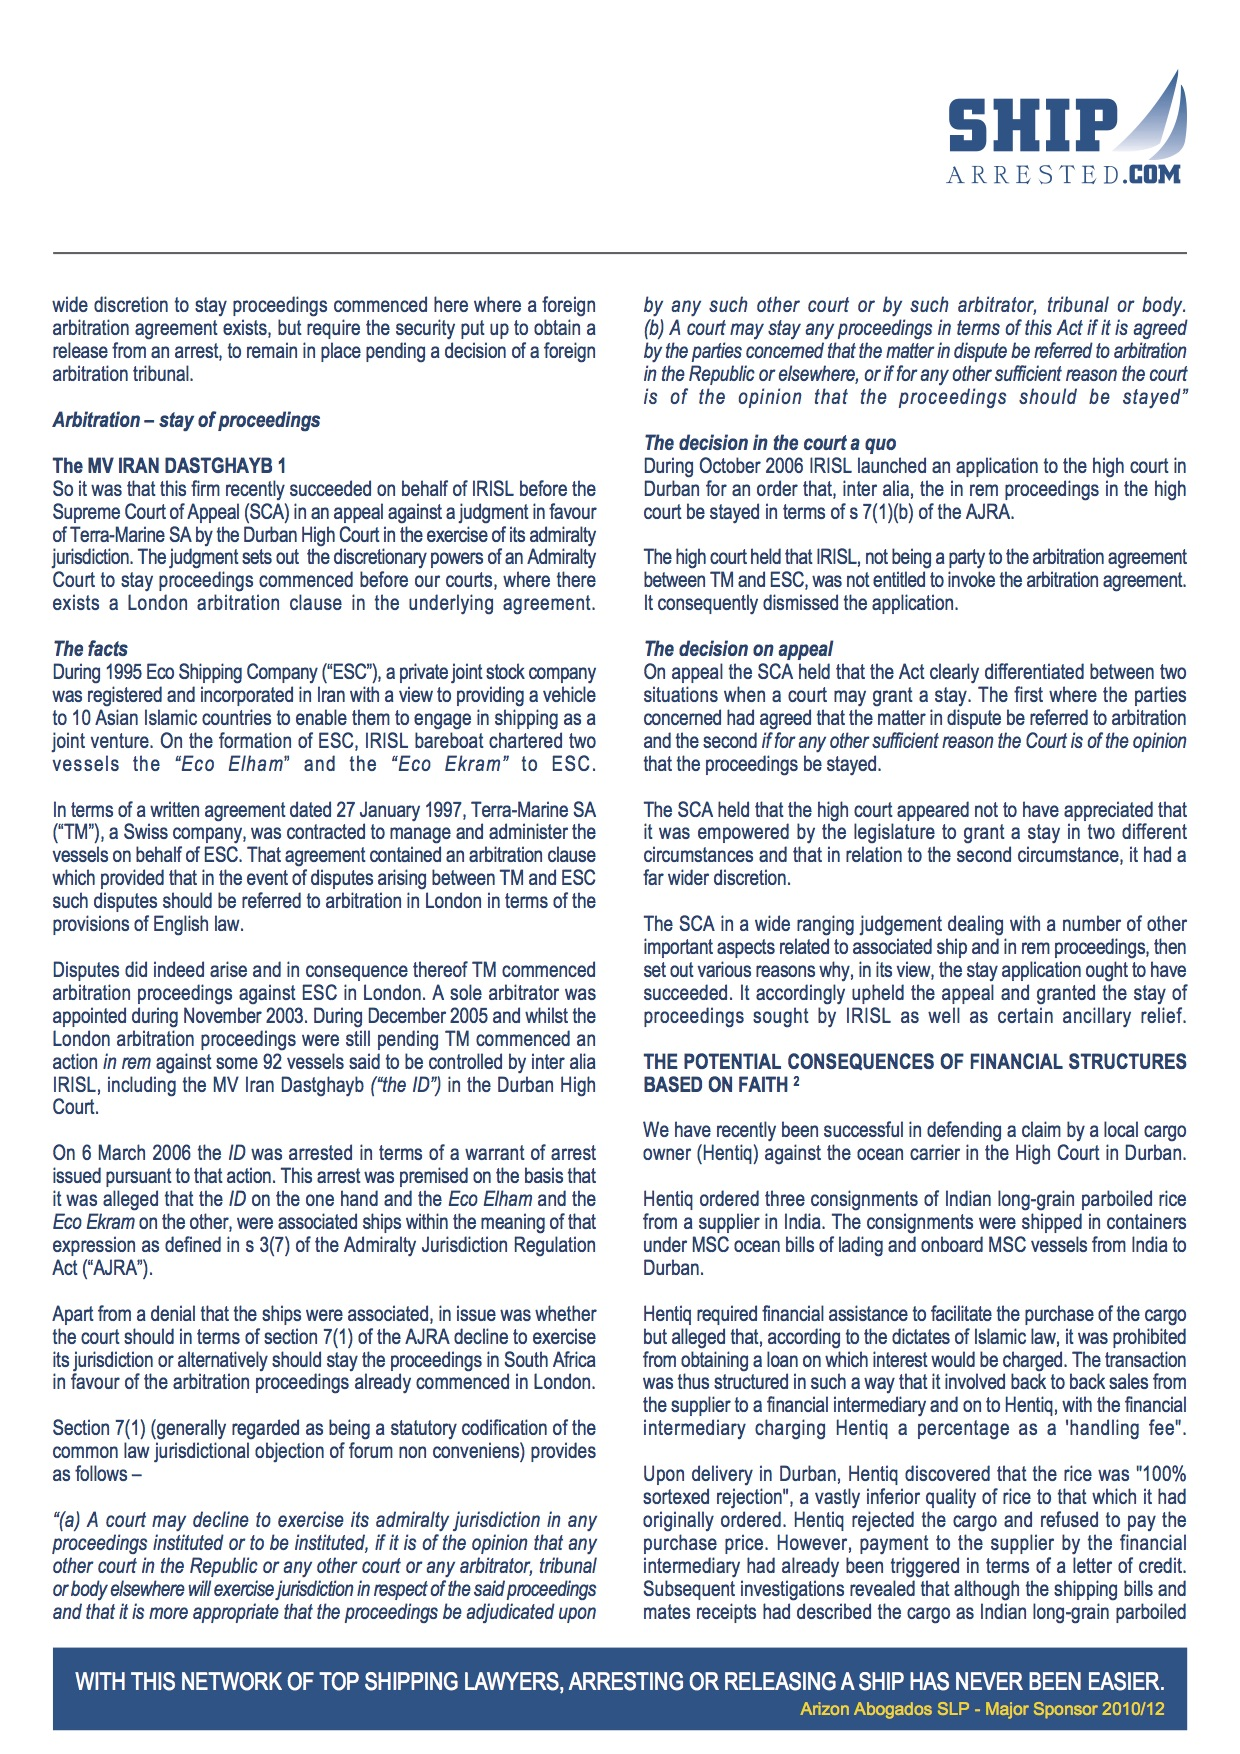 The-Arrest-news-Issue1-page2